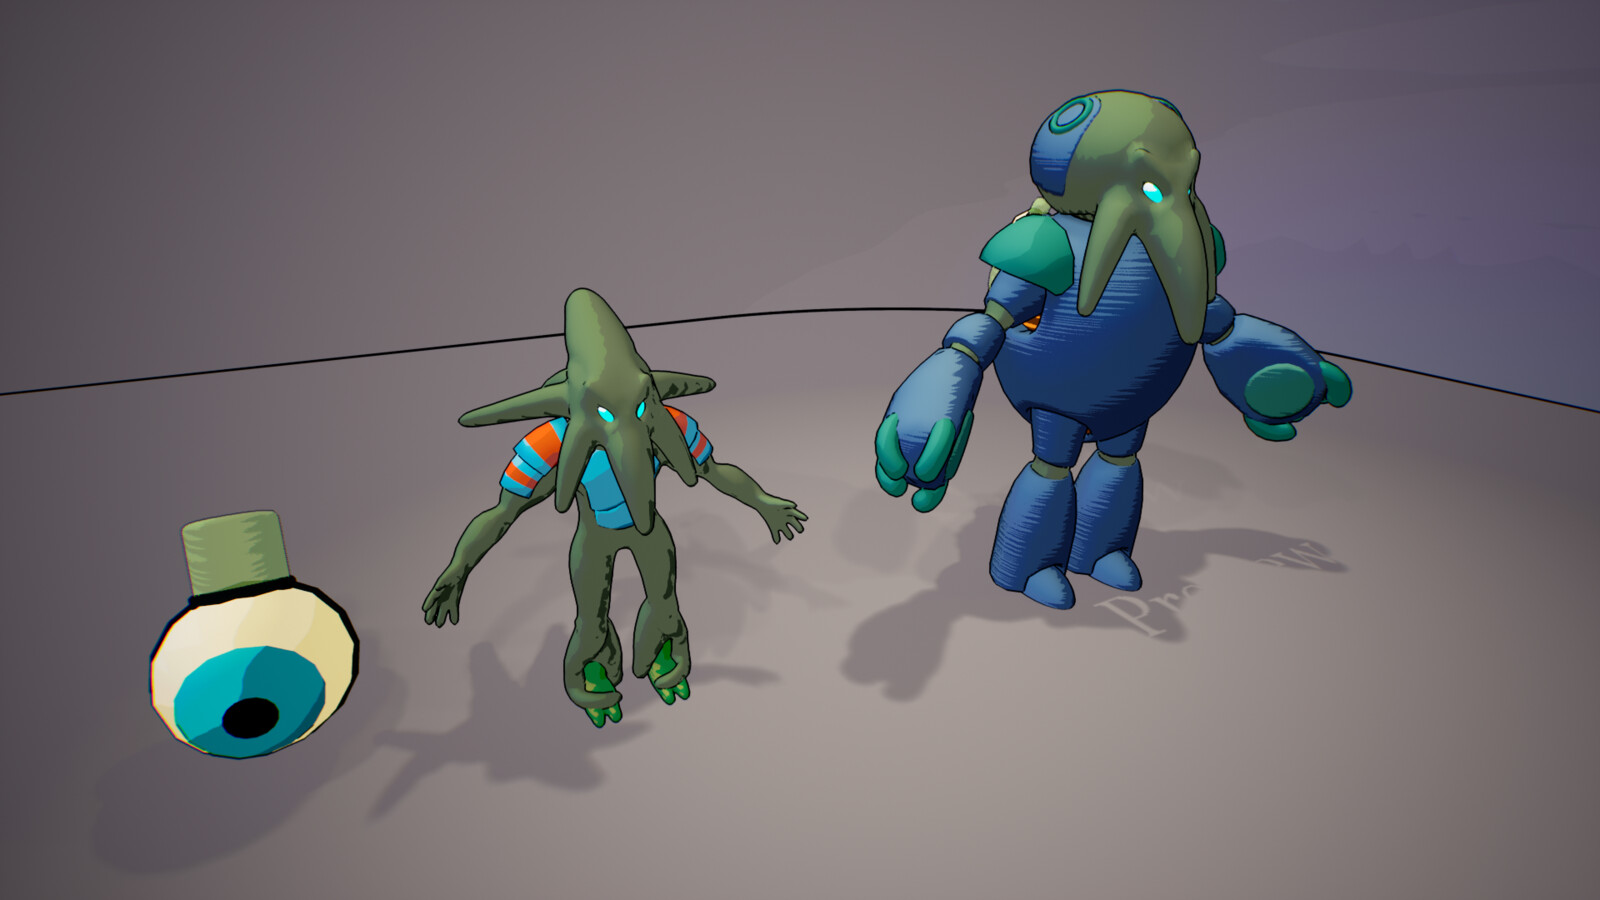 Enemy humanoid models are rigged for use by animators